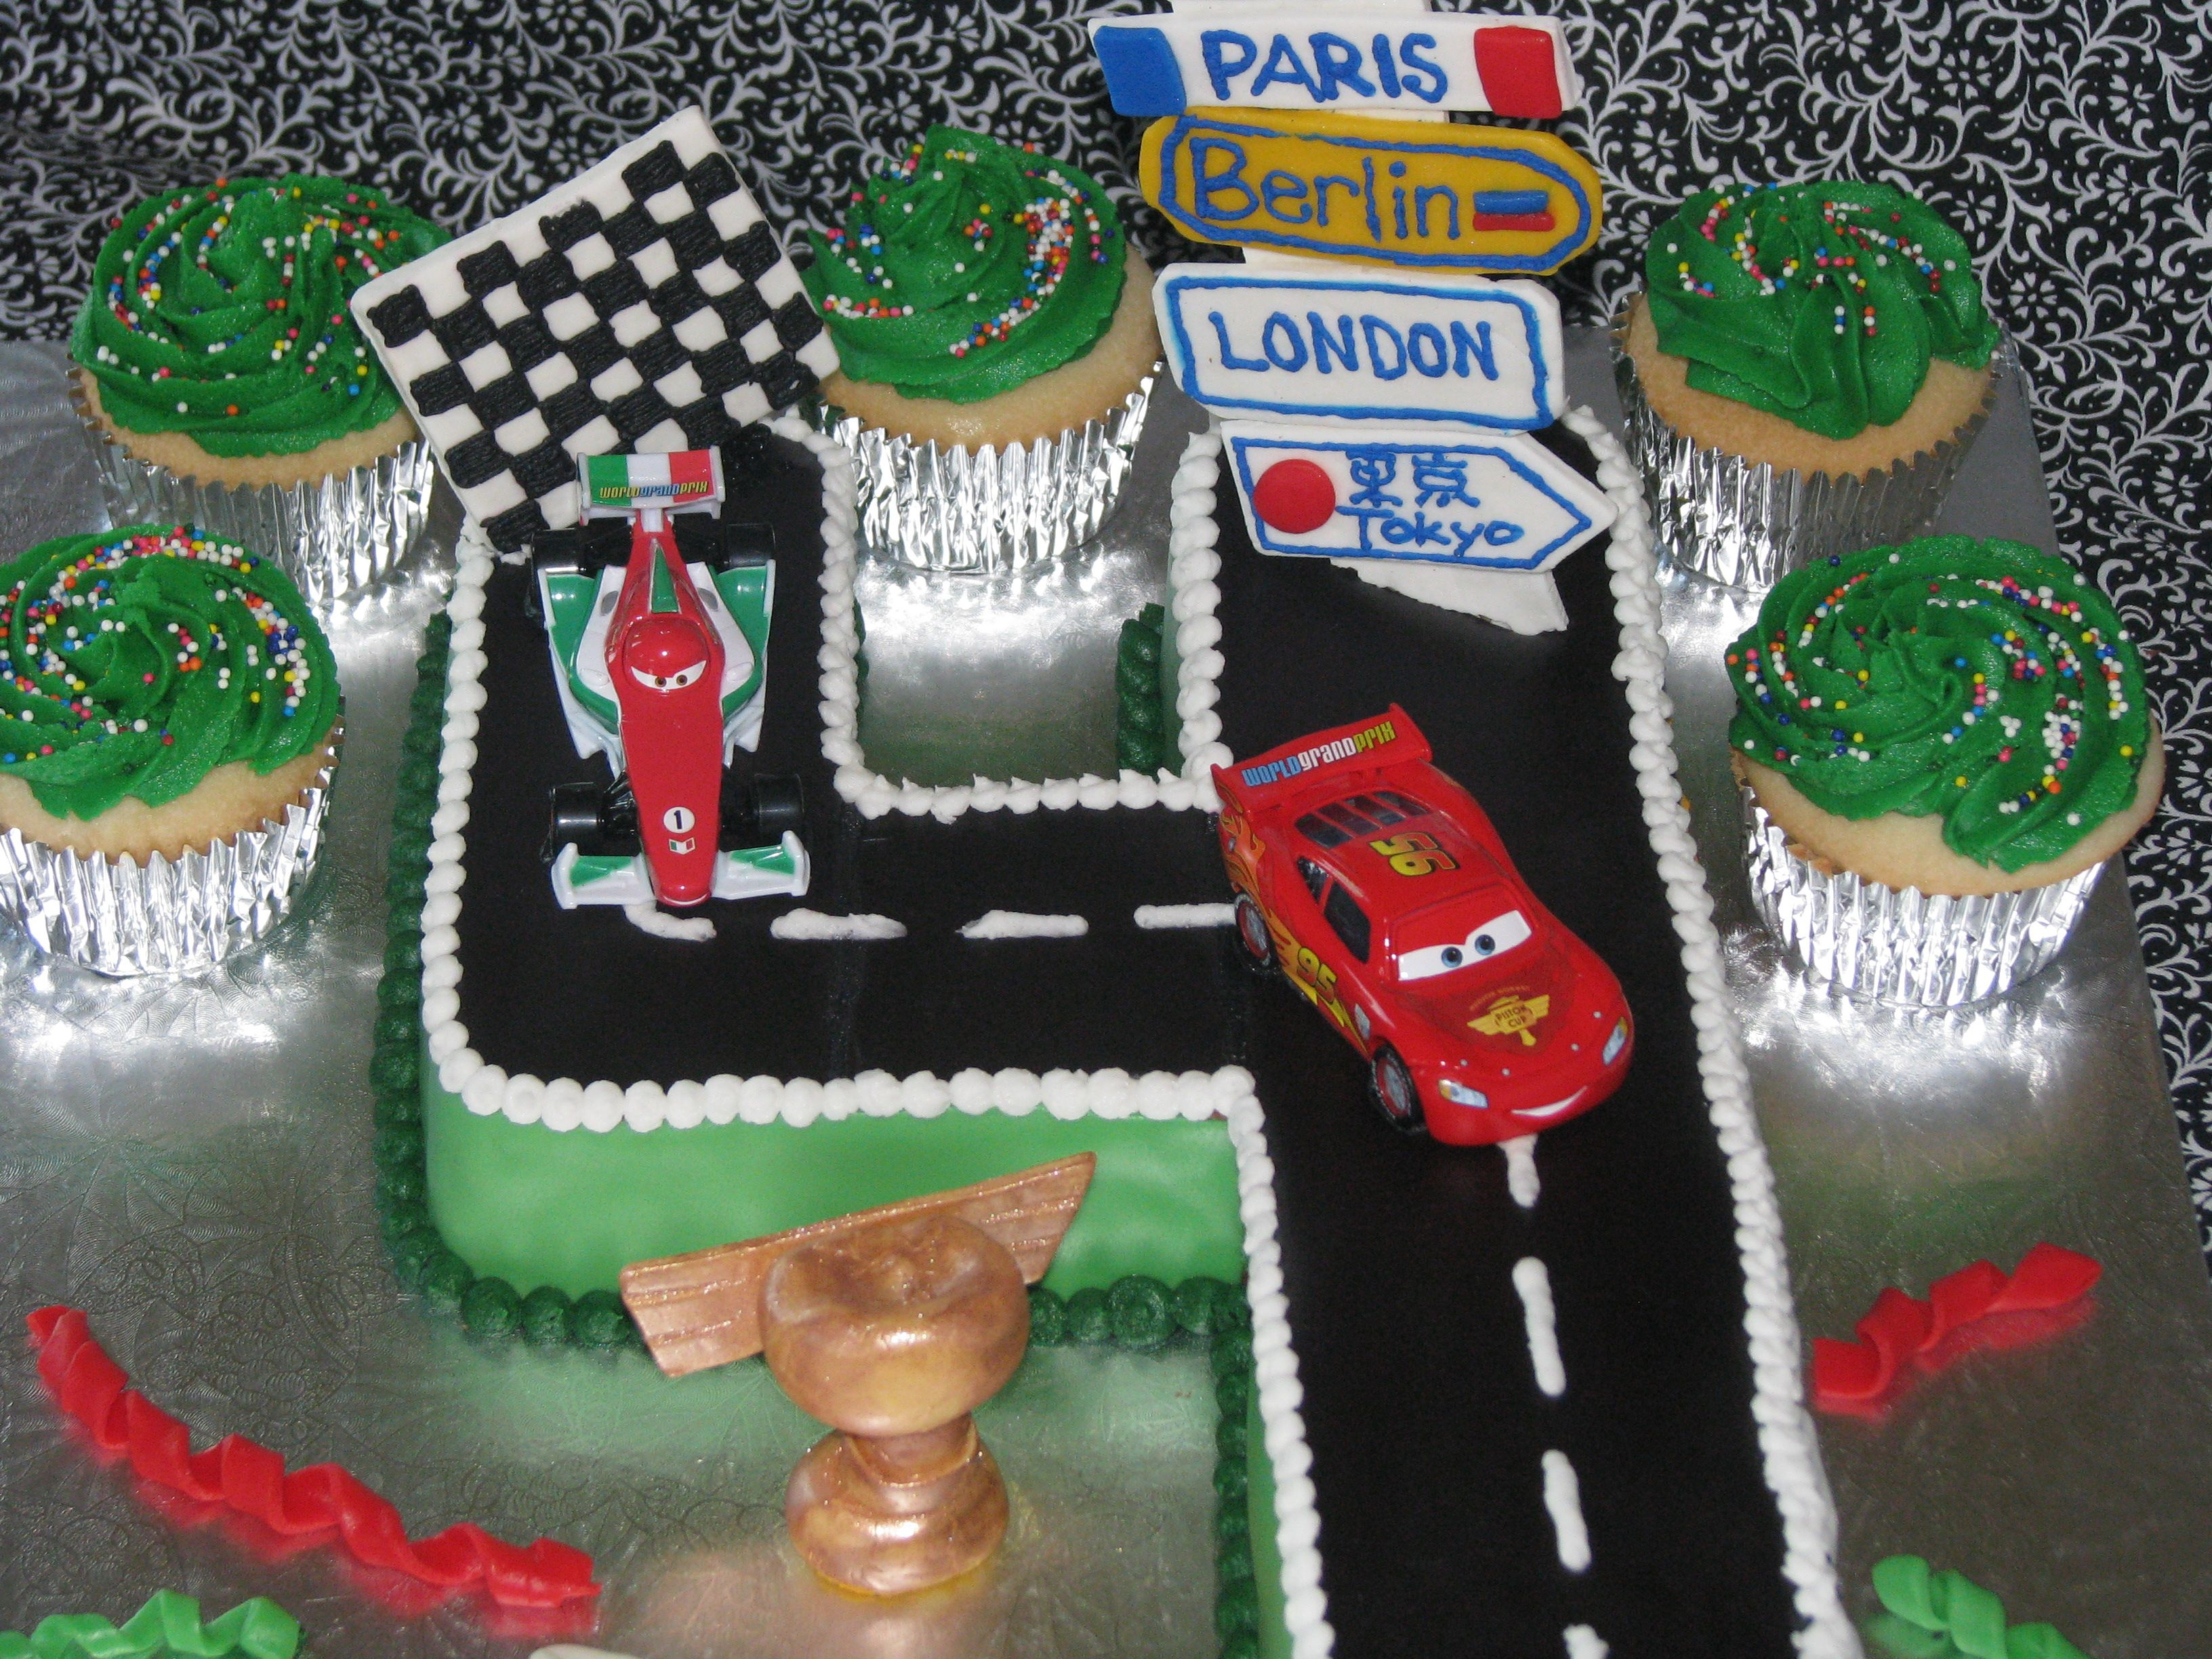 cars 2 birthday cake customer wanted a number 4 but wanted it